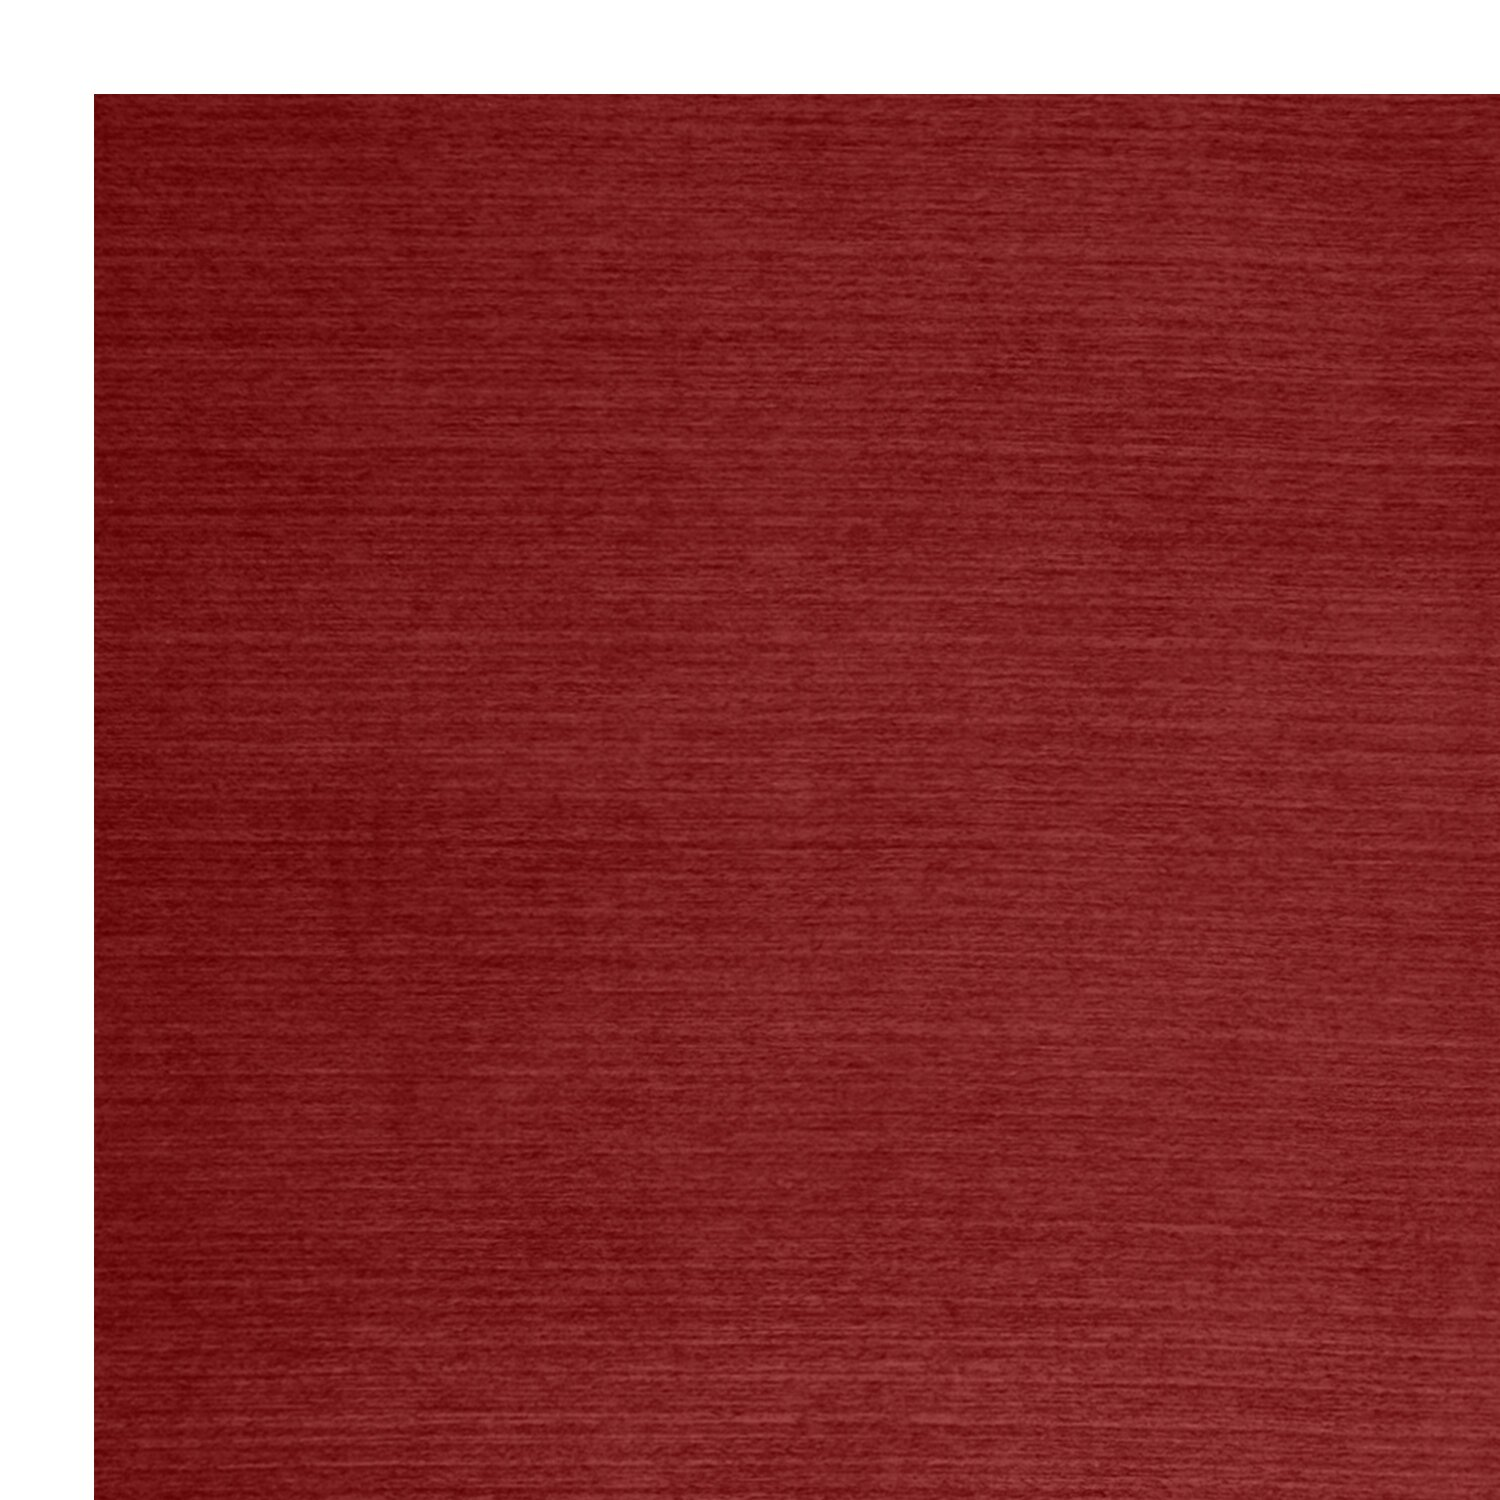 Ruggable Hand Woven Red Indoor Outdoor Area Rug & Reviews